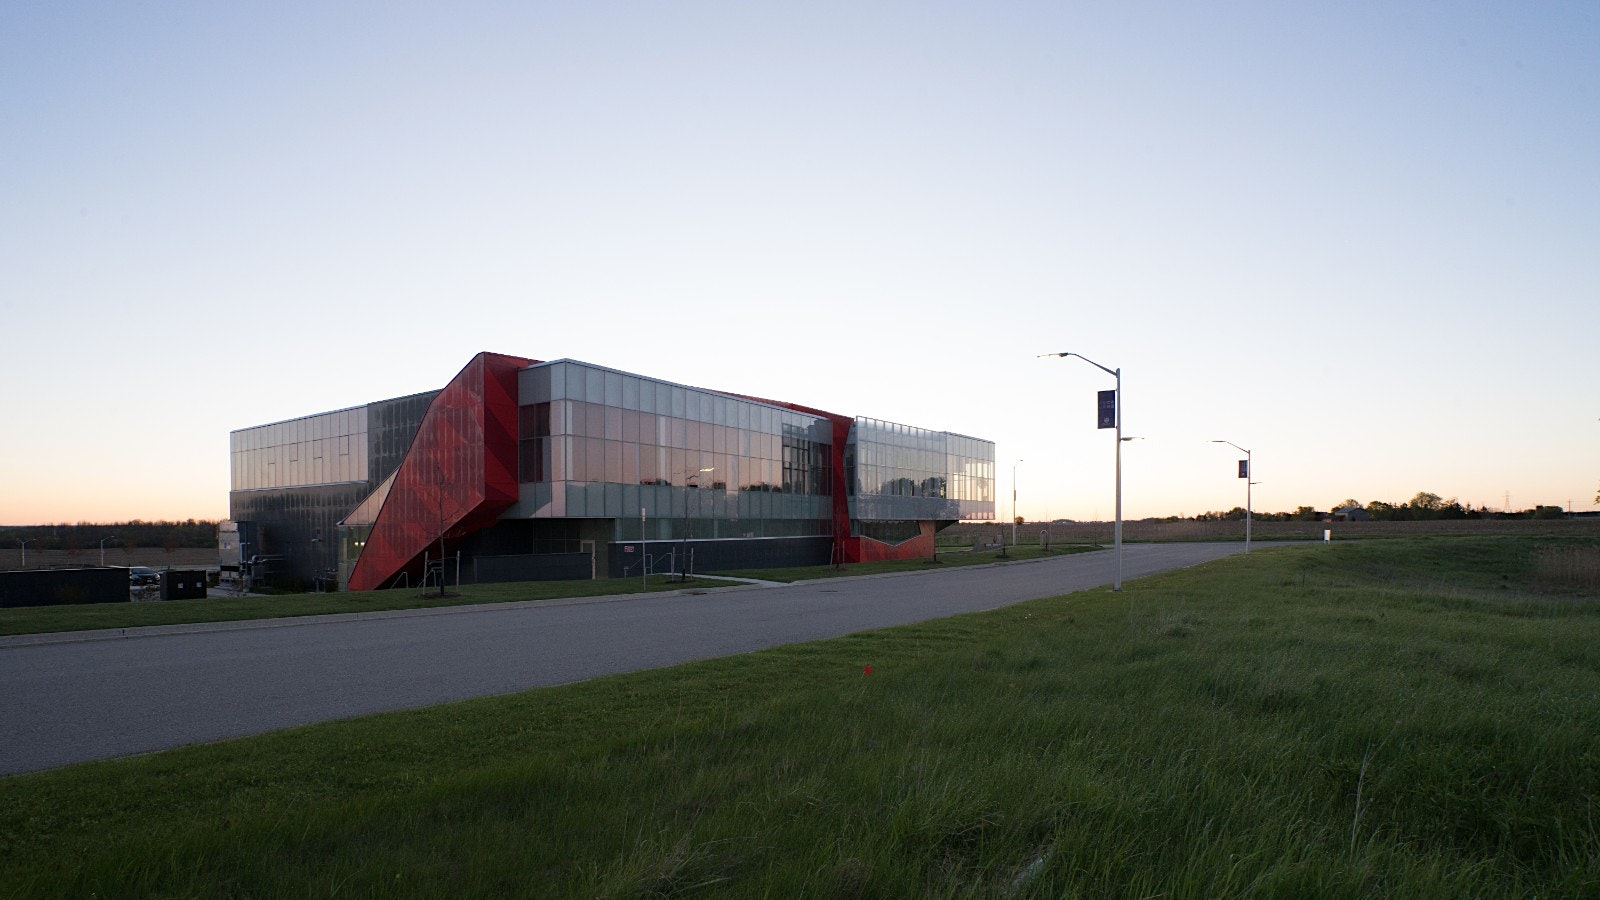 Original Architecture Photo of CCPV at Dusk